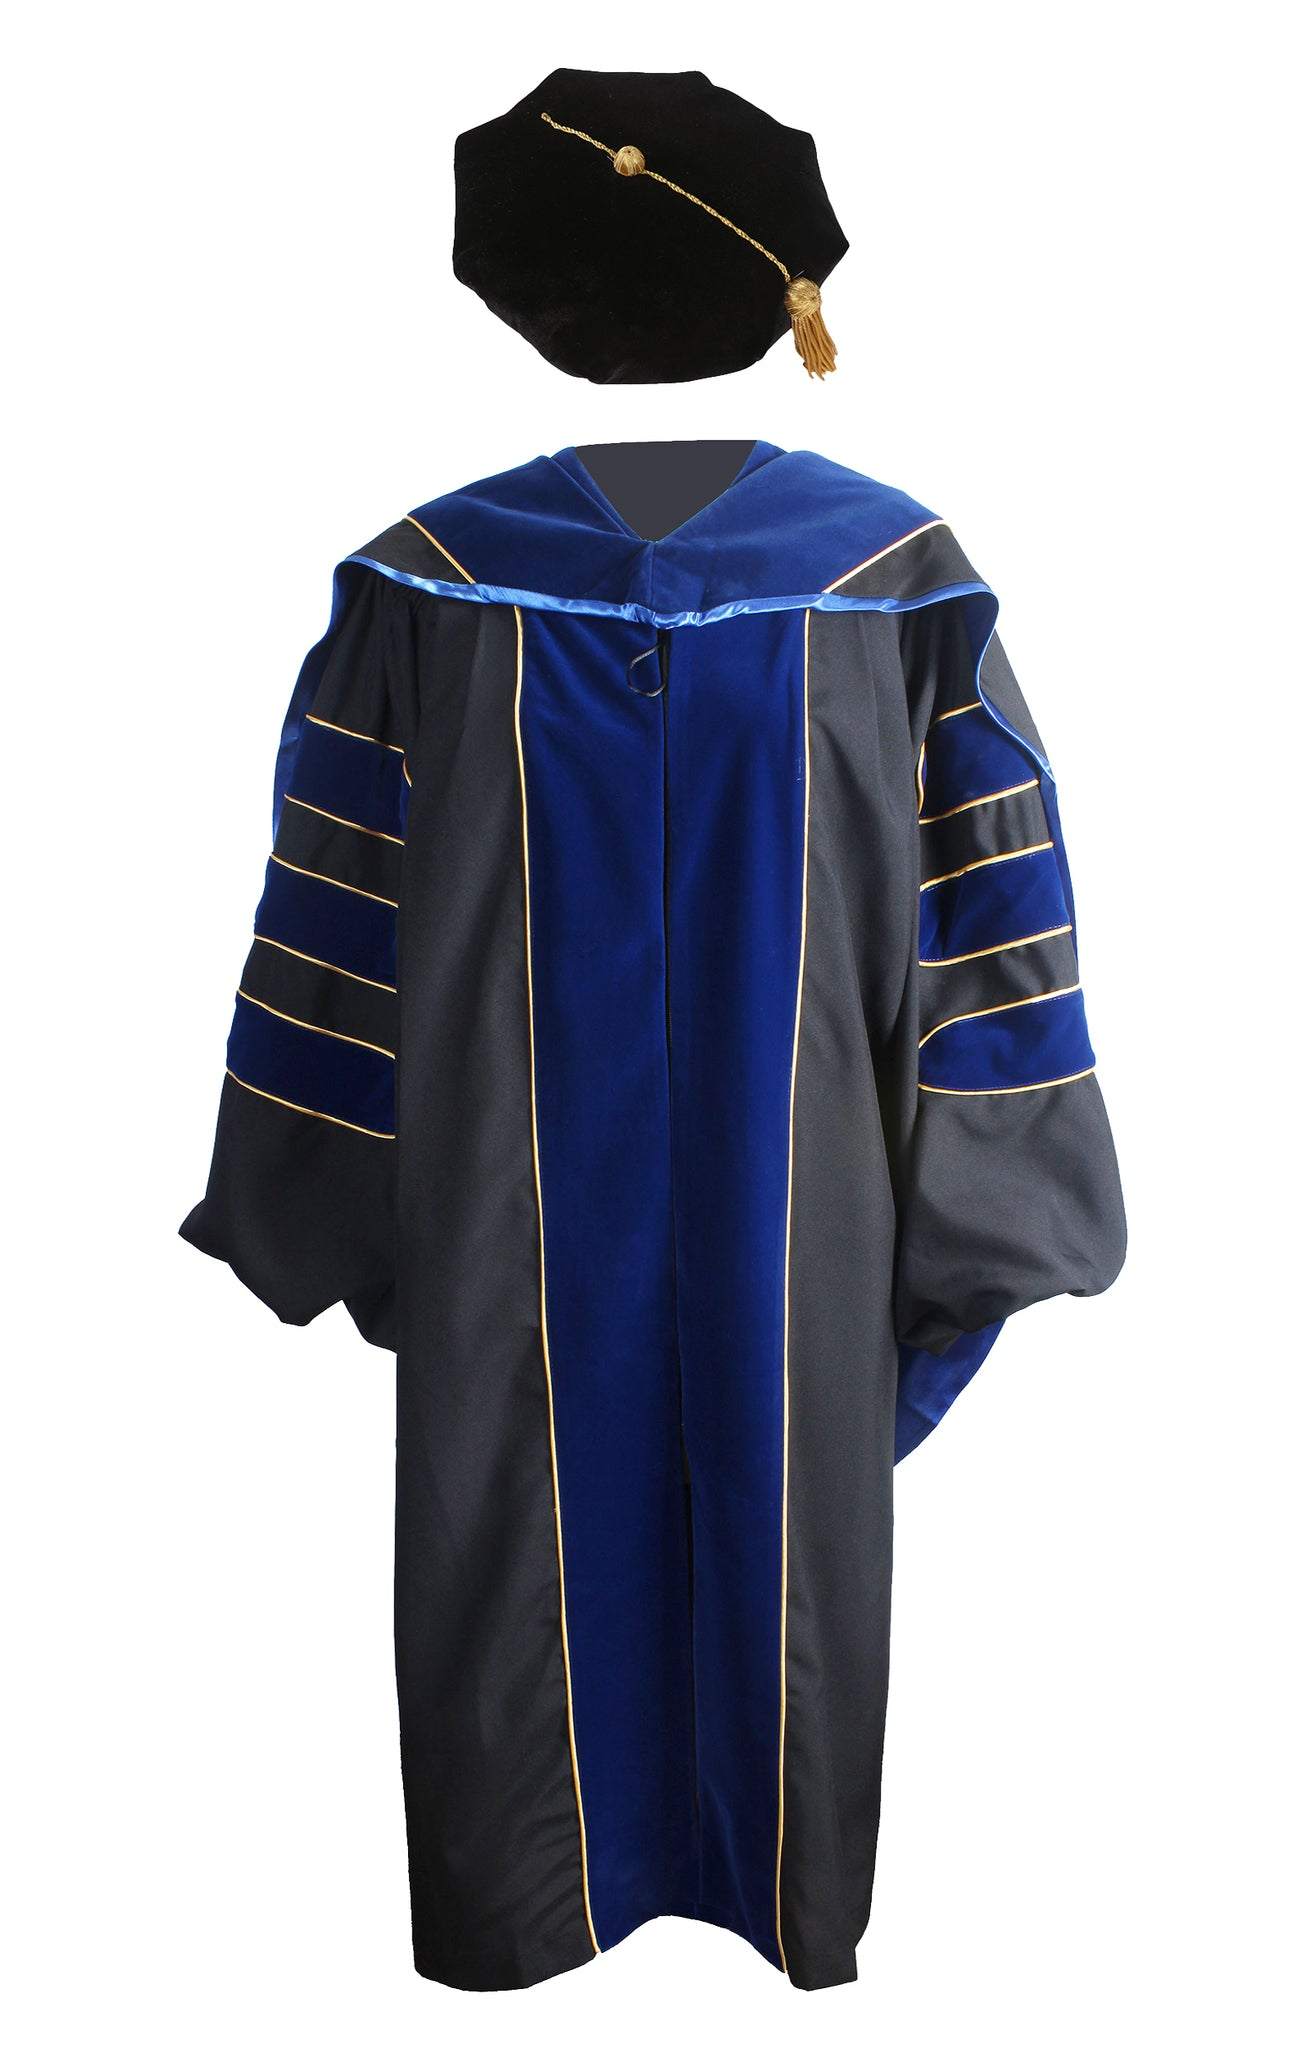 Deluxe Doctoral Graduation Gown,Phd Hood and 8-Side Tam Package Royal Blue